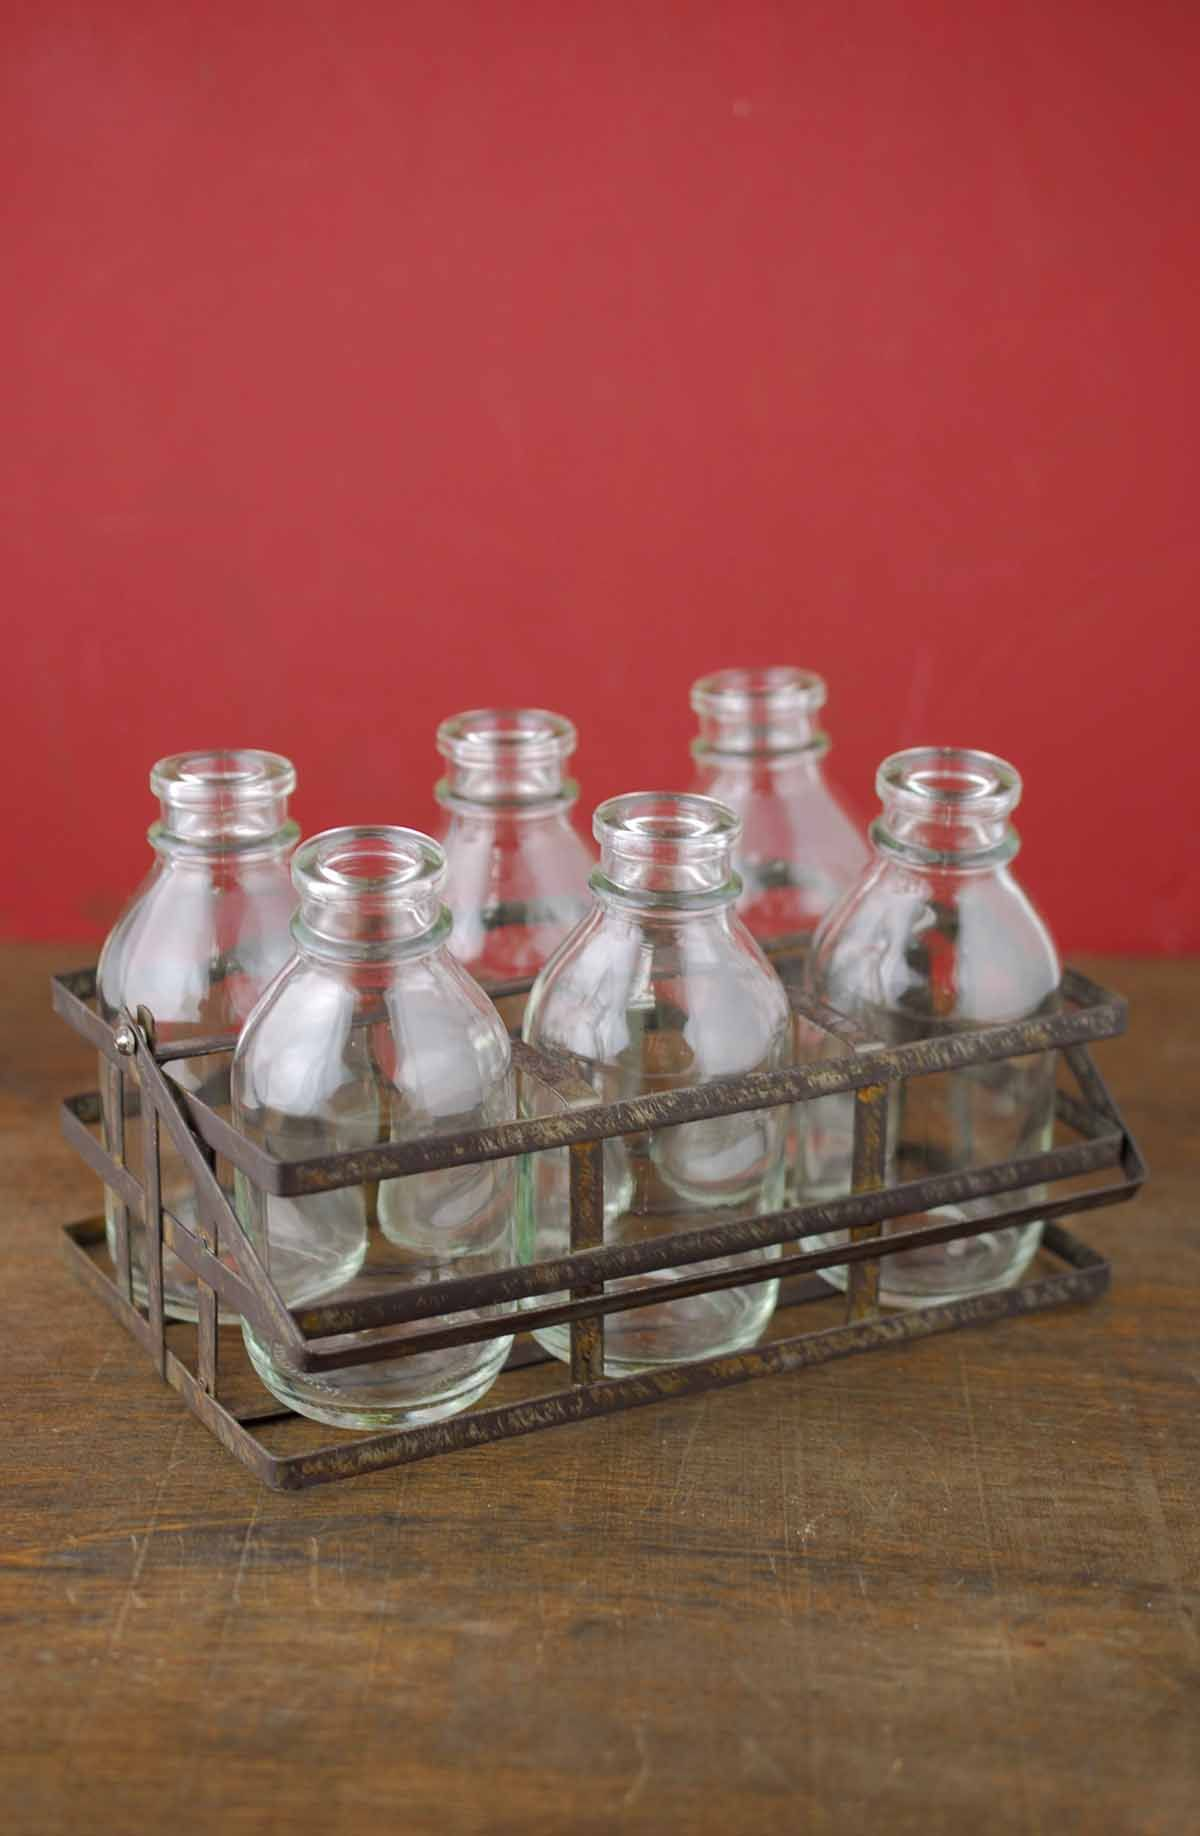 Bottle Basket Caddy With 6 Glass Bottles 4x7 Bottle Caddy Glass Bottles Bottles And Jars